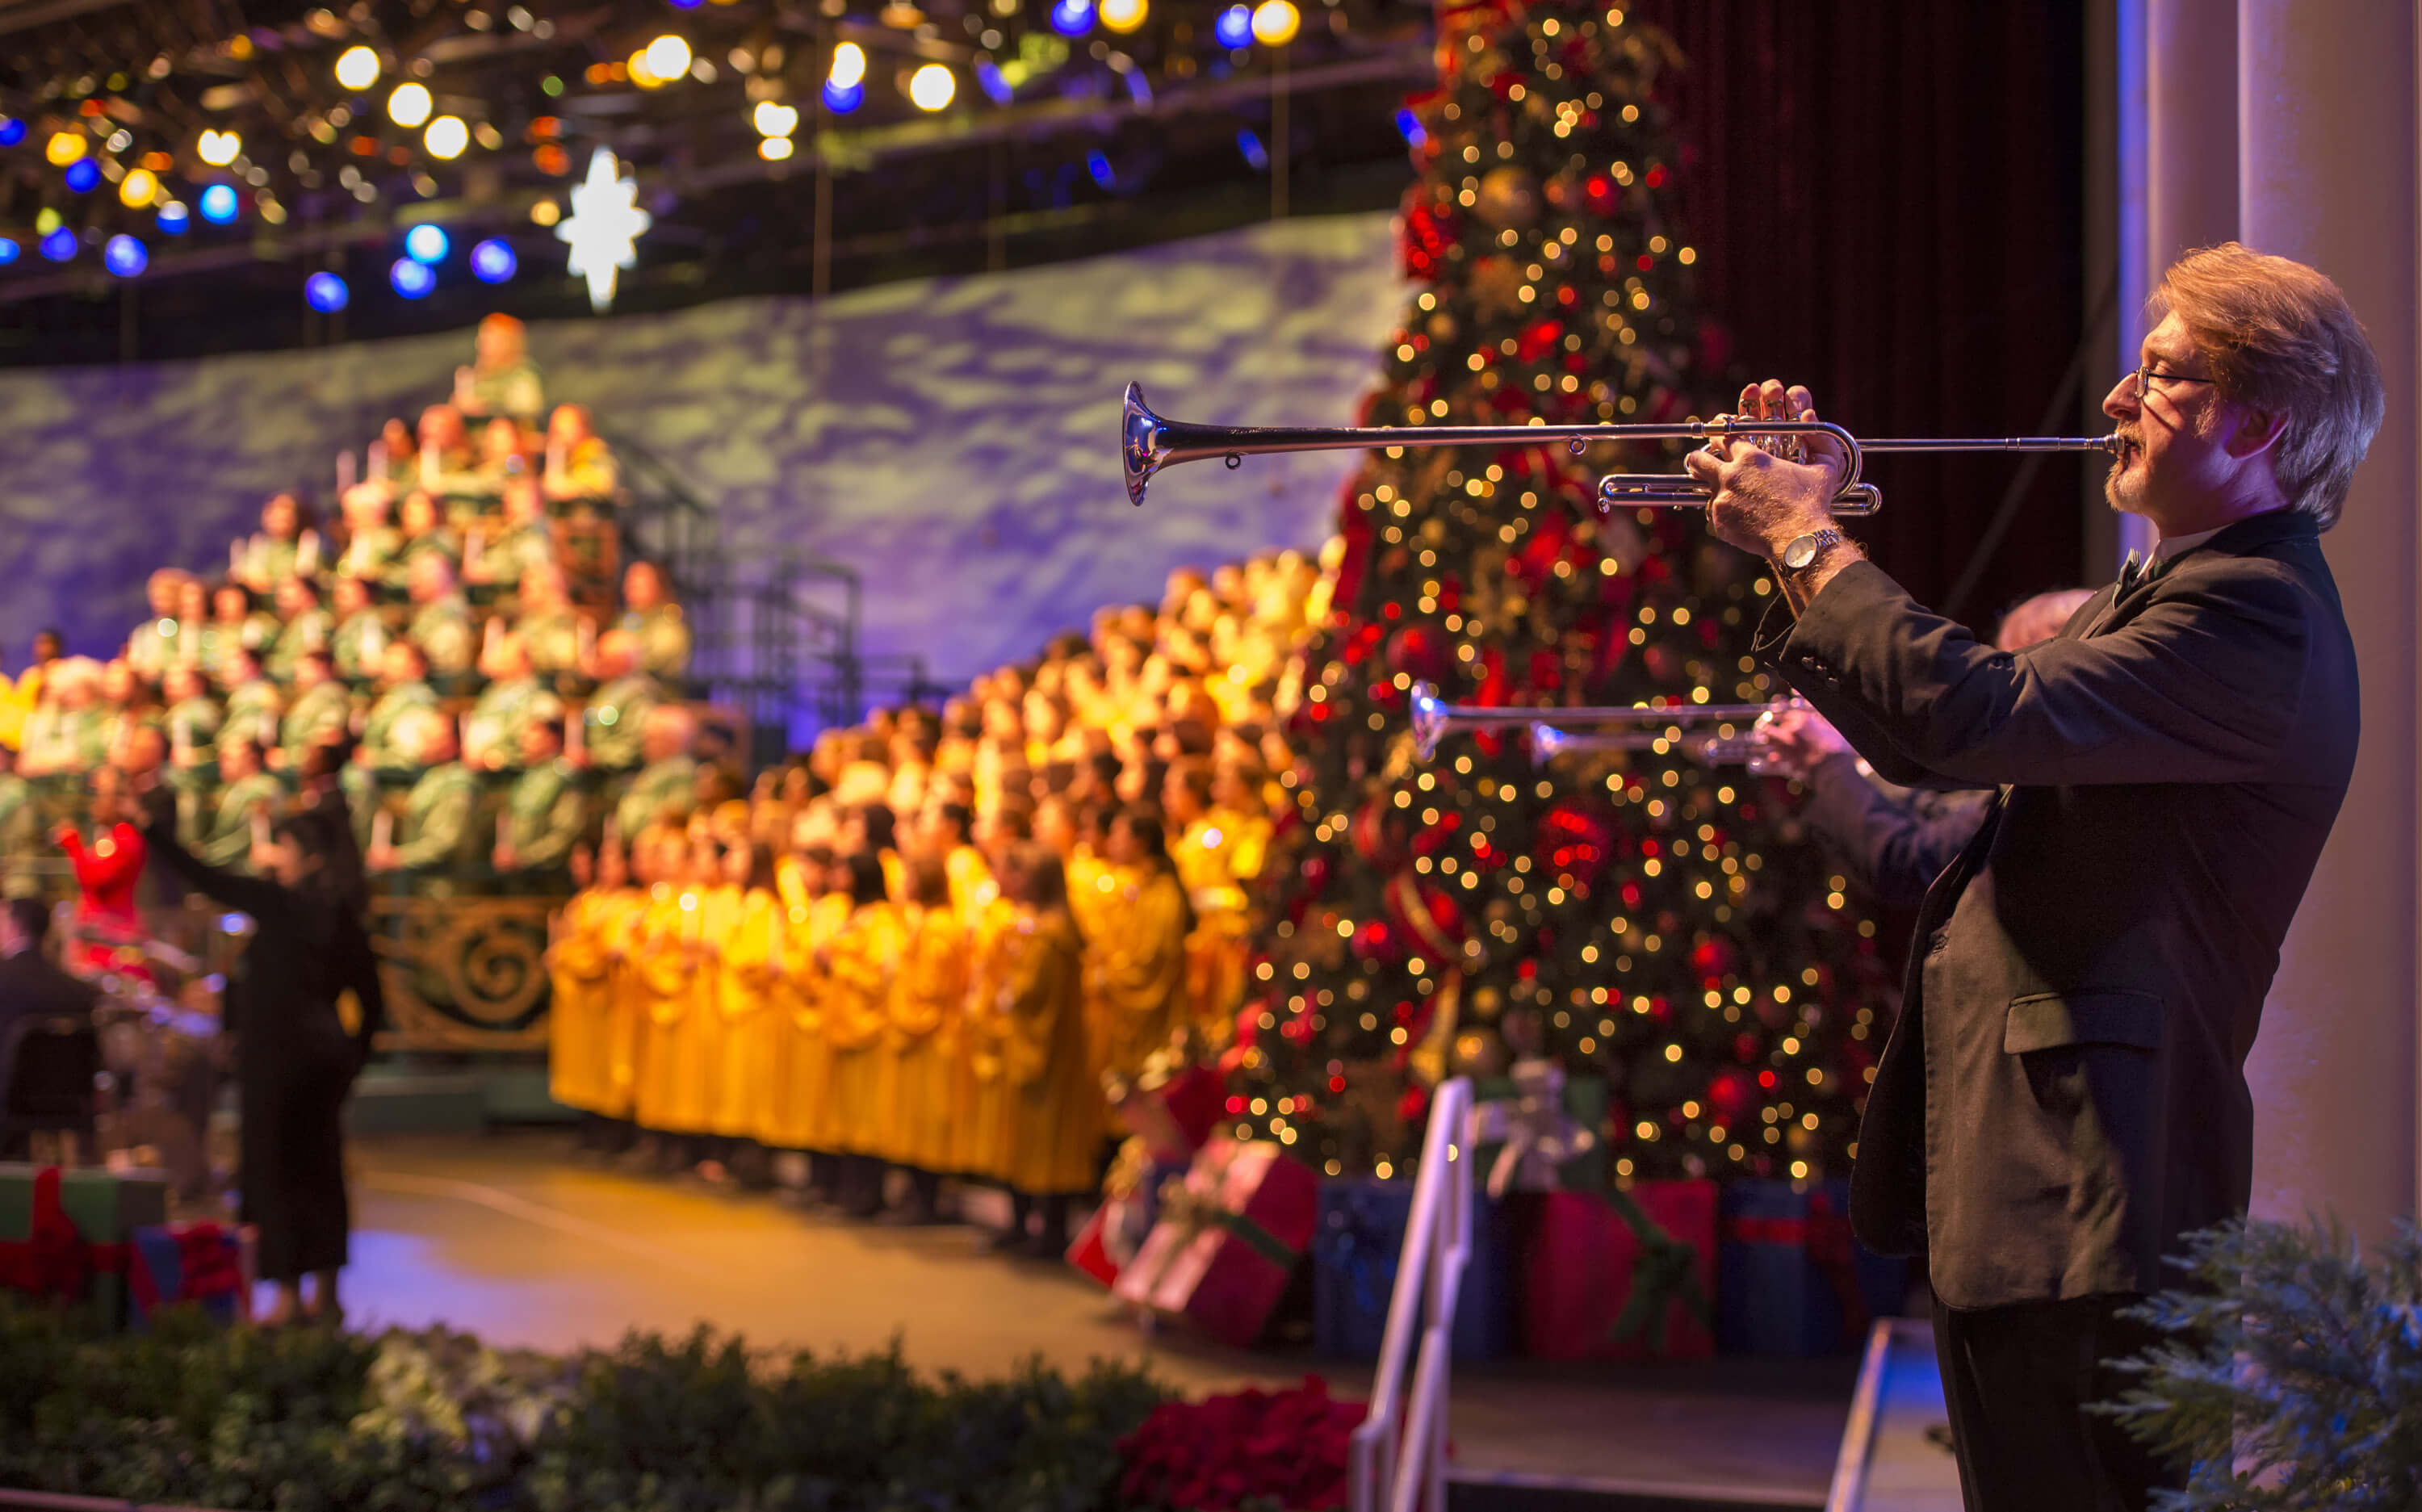 disney world holiday events 2018 epcot candlelight processional - When Is Disney Decorated For Christmas